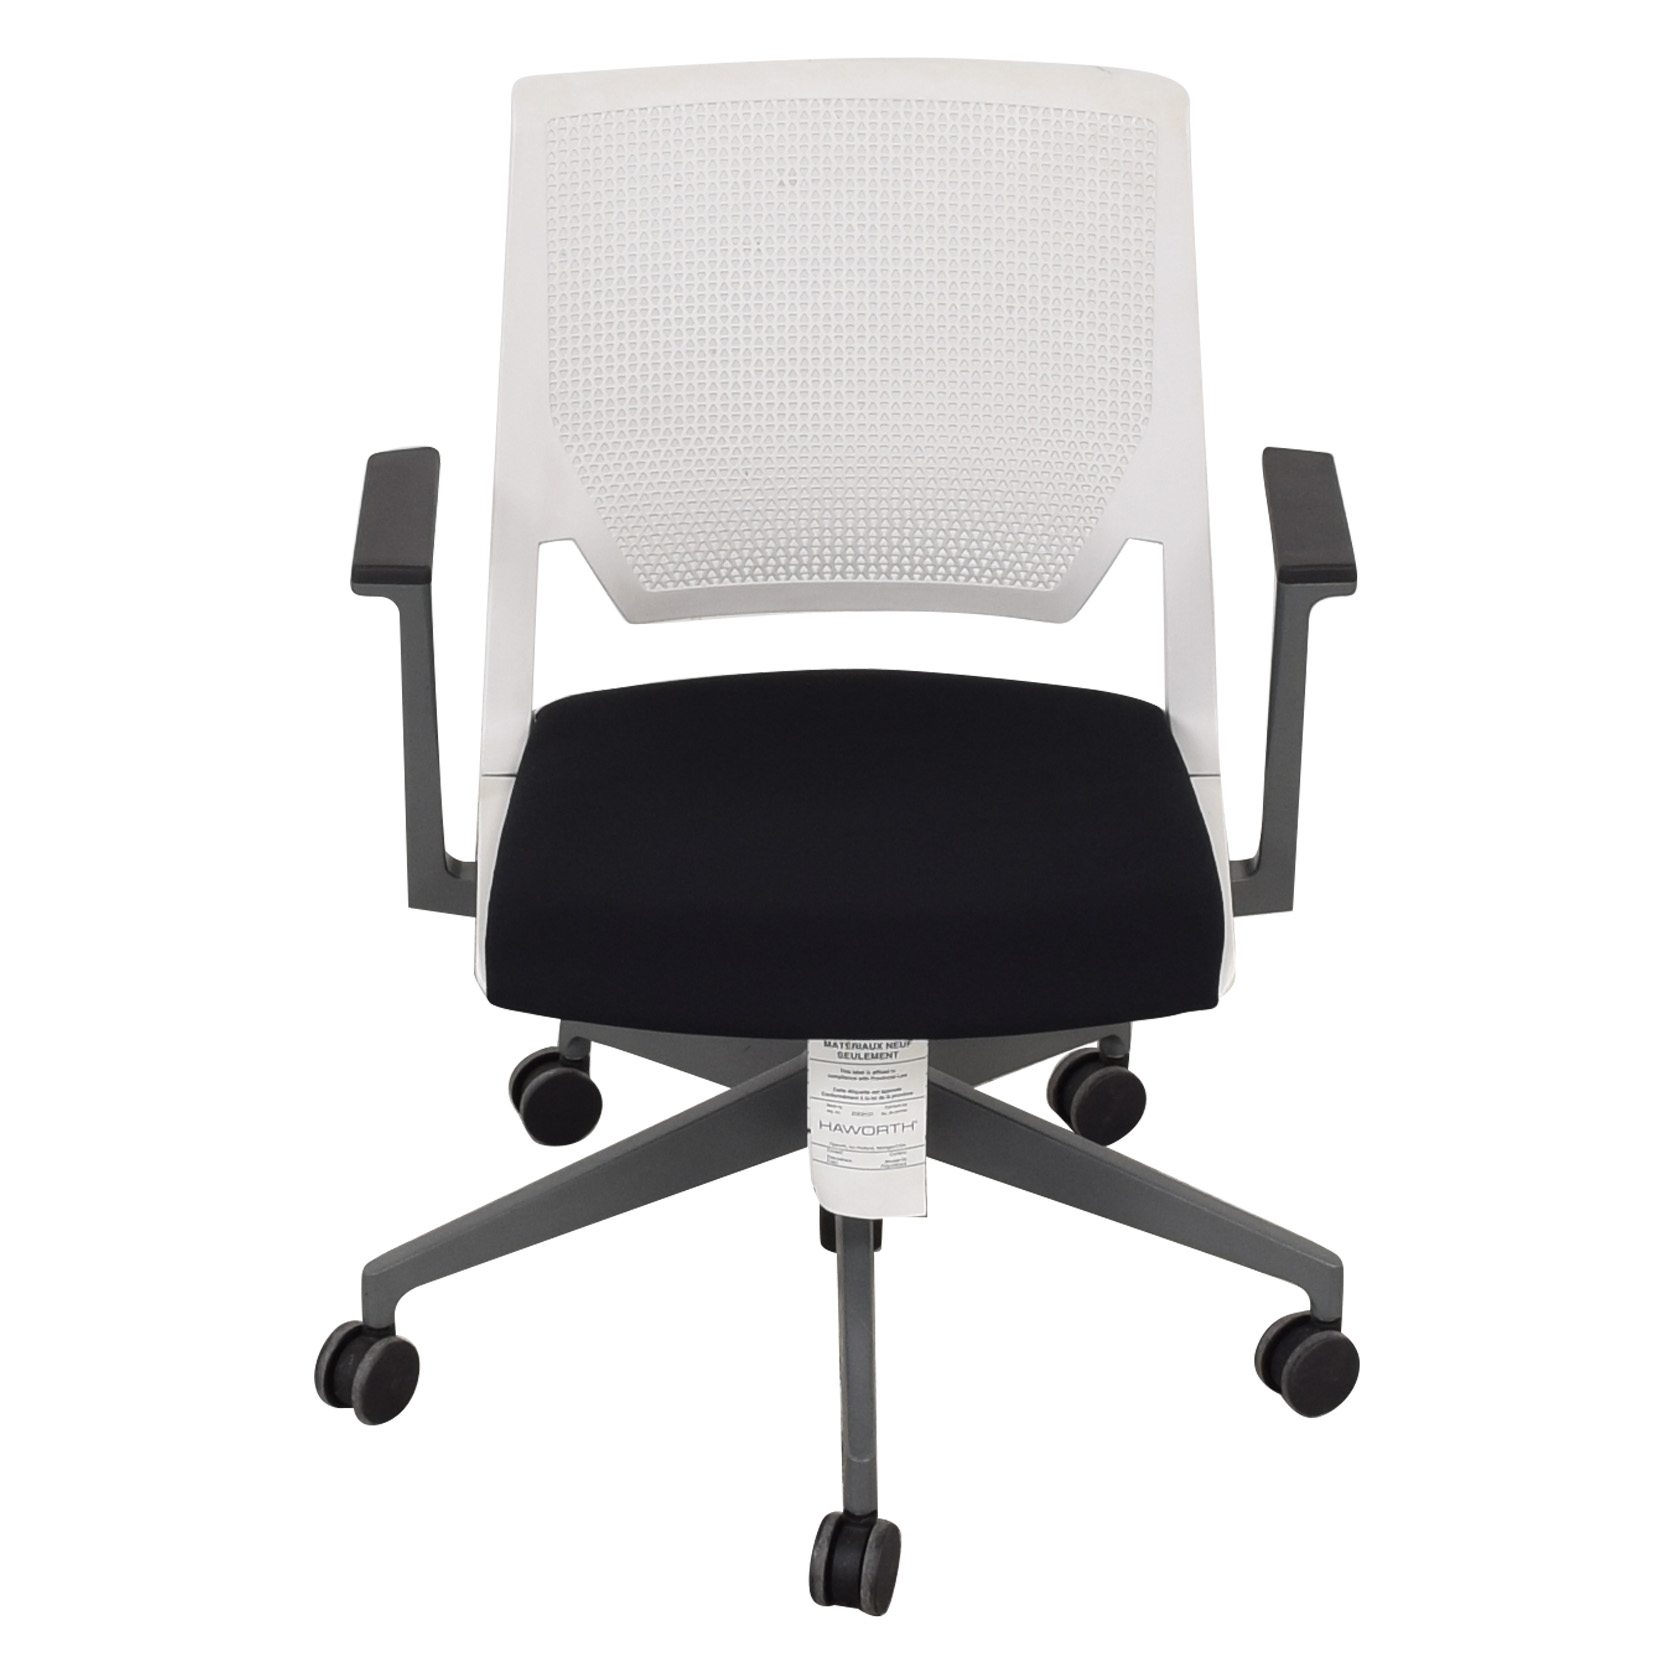 Haworth Haworth Very Conference Chair with Arms dimensions